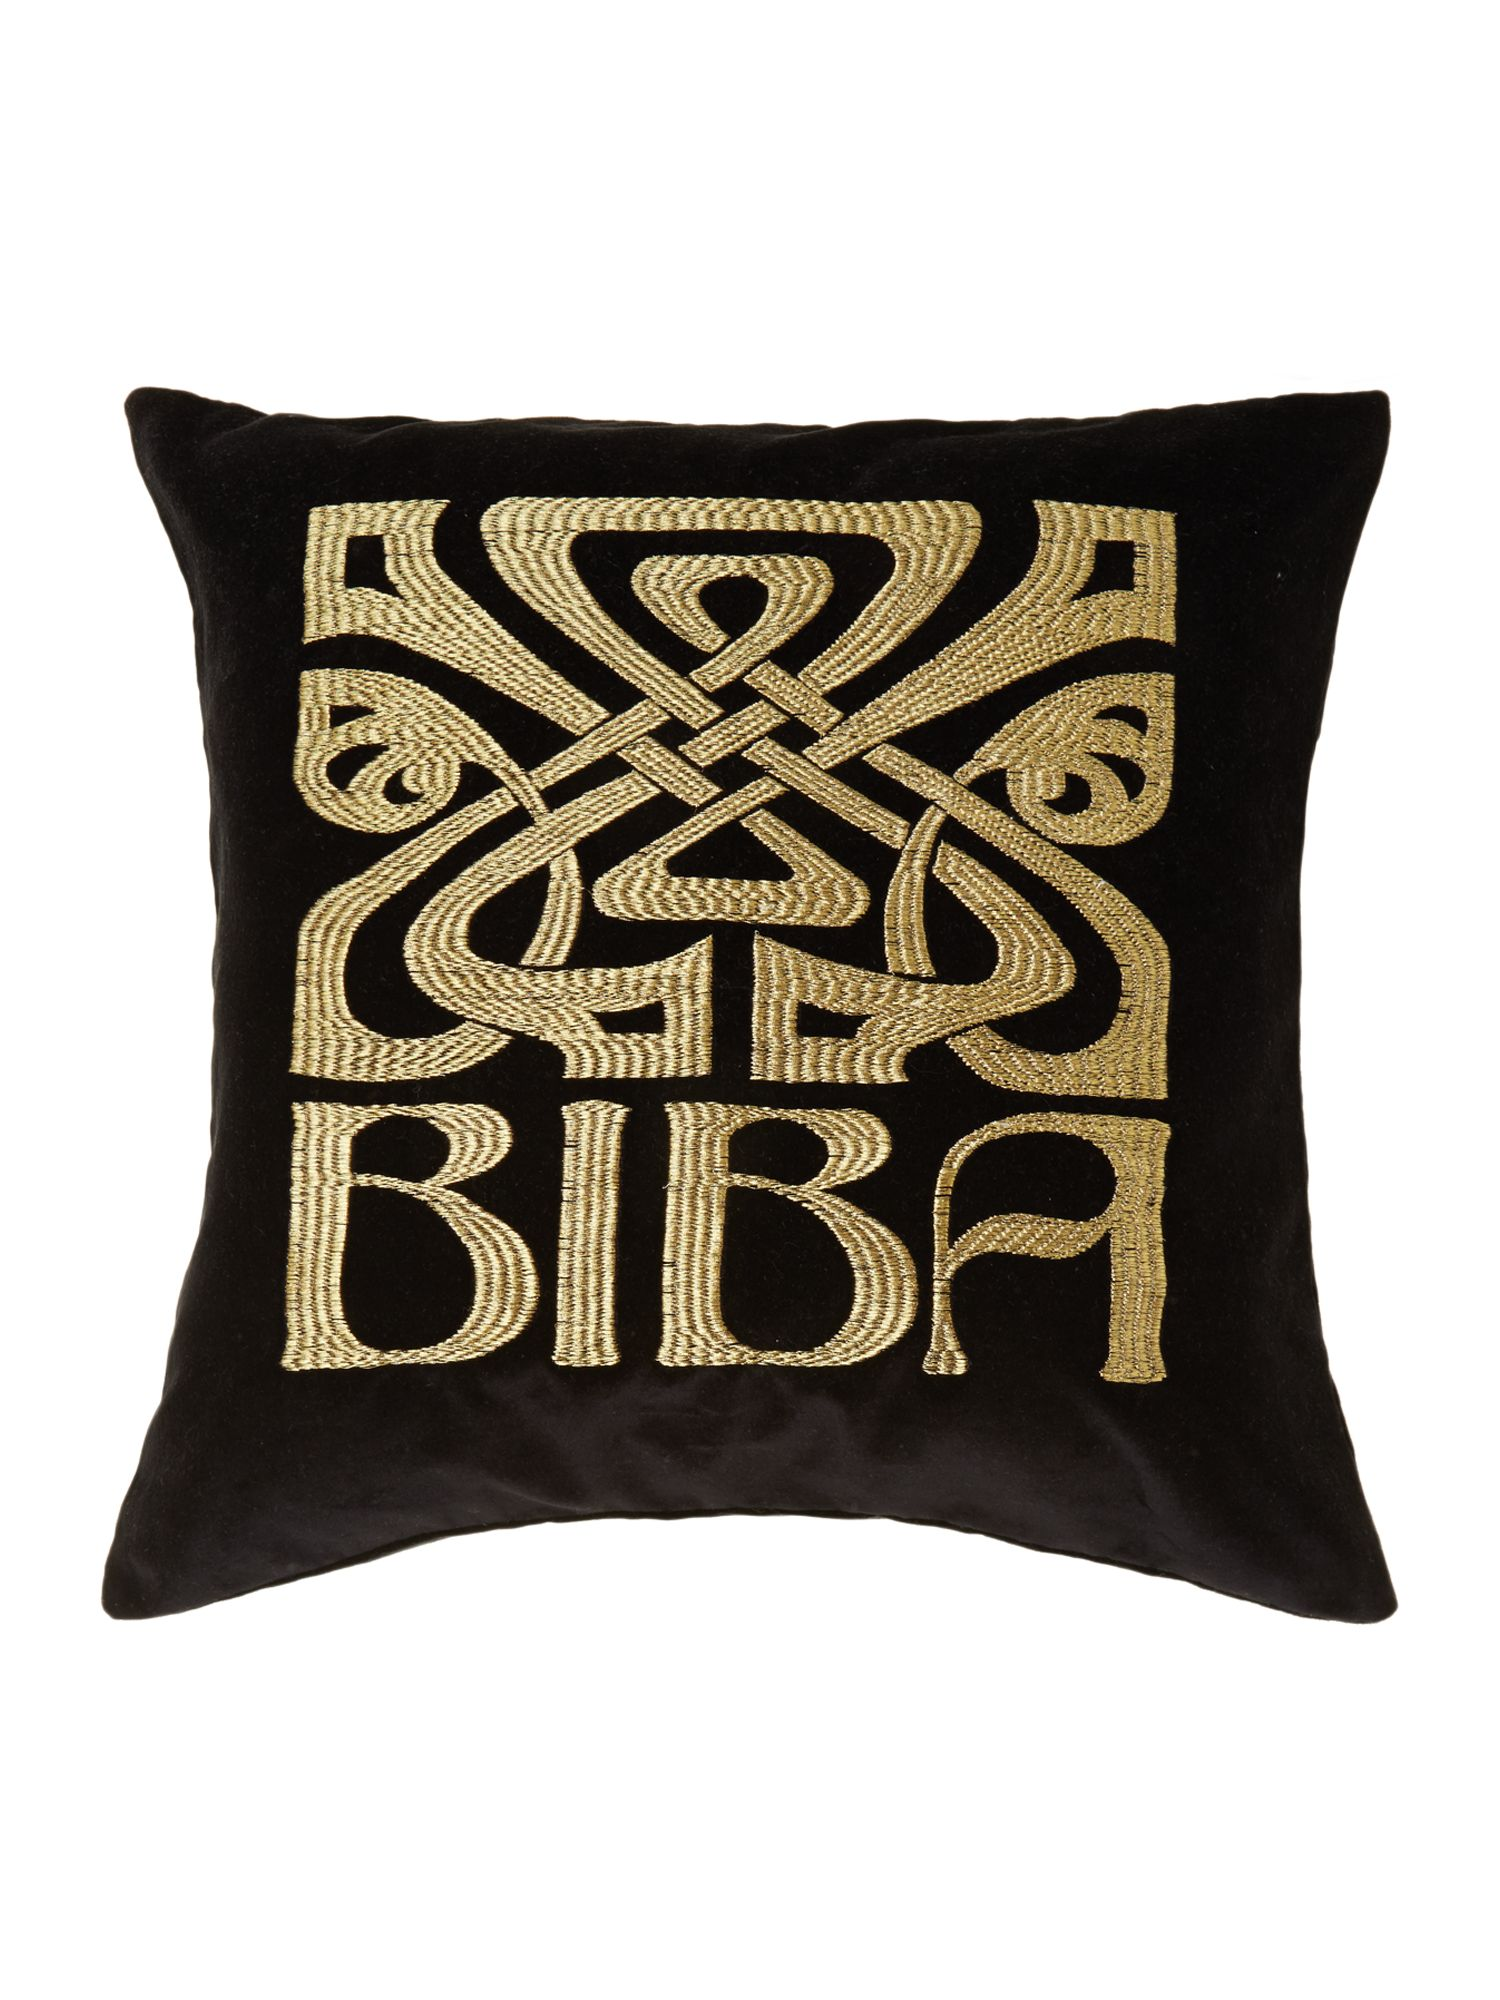 Black velvet Biba logo cushion